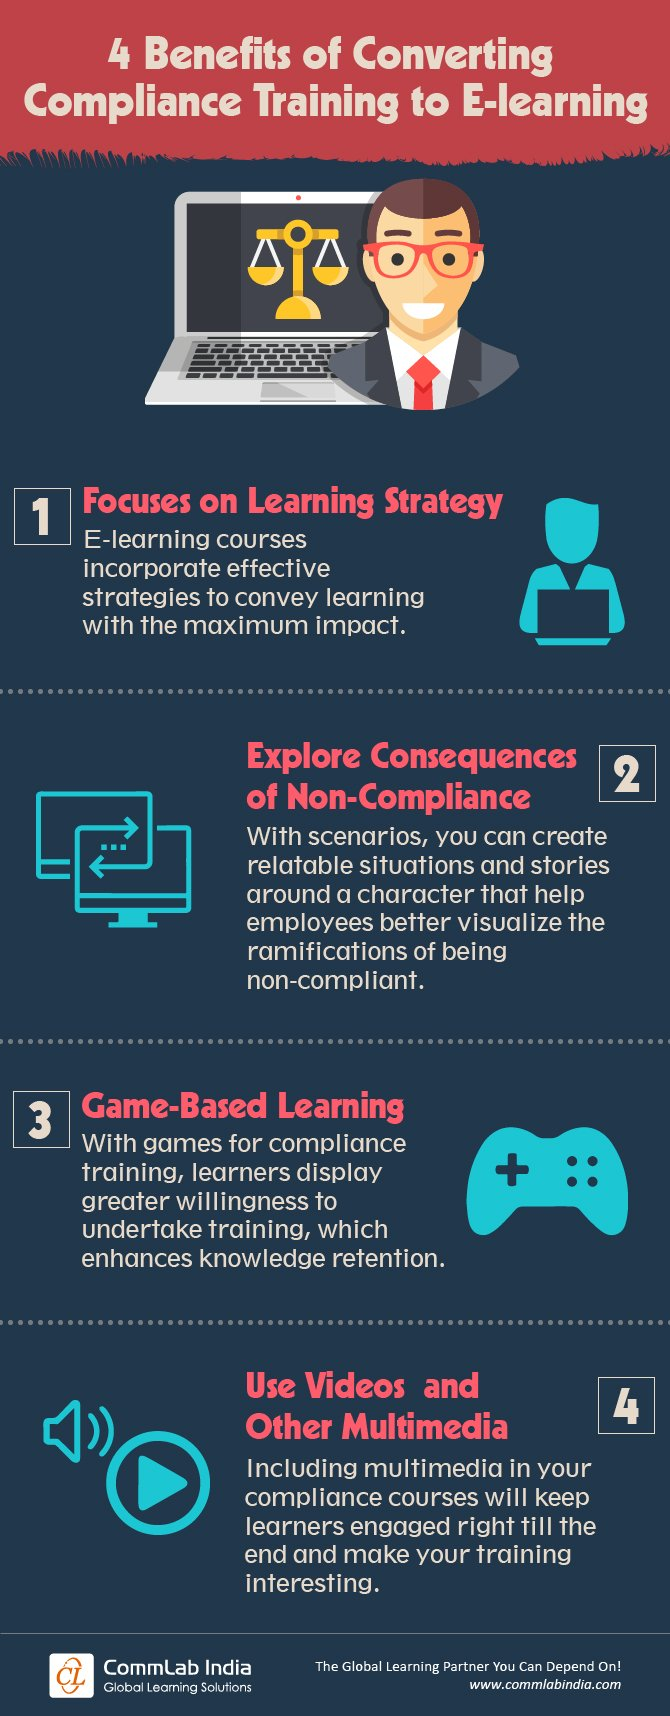 4 Benefits of Converting Compliance Training to E-Learning [Infographic]